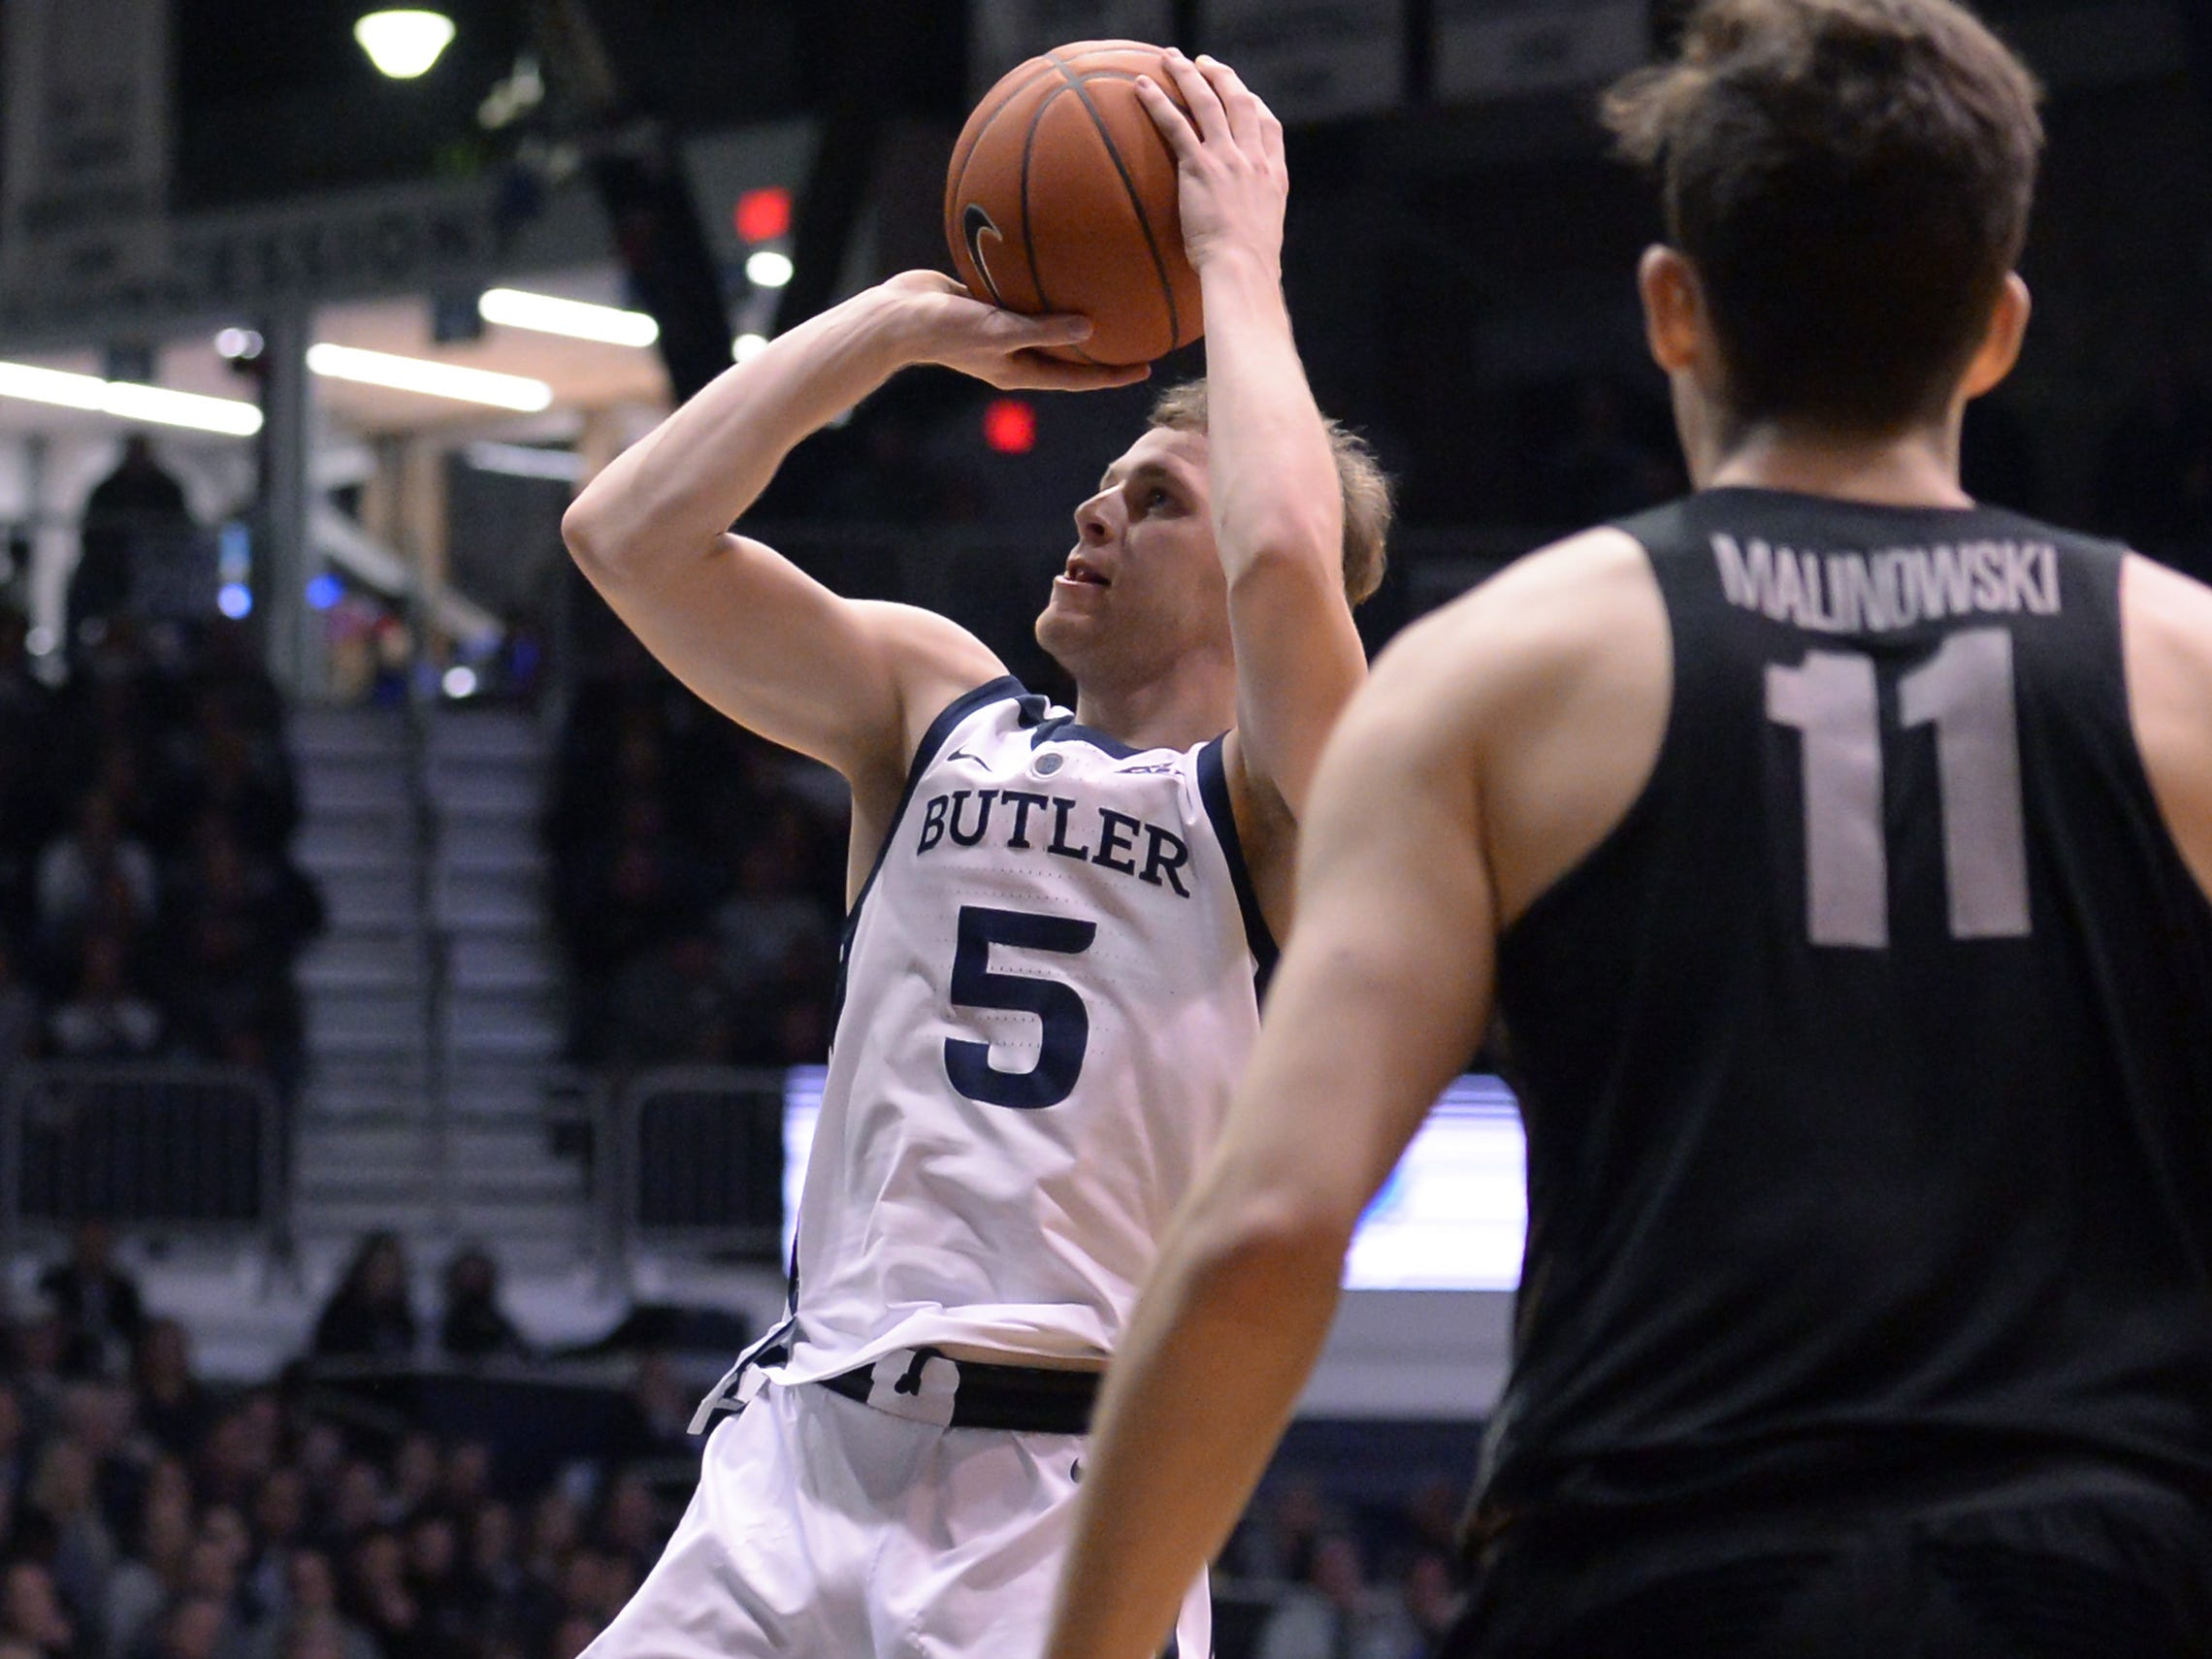 Butler Bulldogs guard Paul Jorgensen (5) pulls-up a shot during the second half of game action between Butler University and Georgetown University, at Hinkle Fieldhouse in Indianapolis, Indiana on Wednesday, Jan. 2, 2019. The Butler Bulldogs fell to the Georgetown Hoyas 84-76.